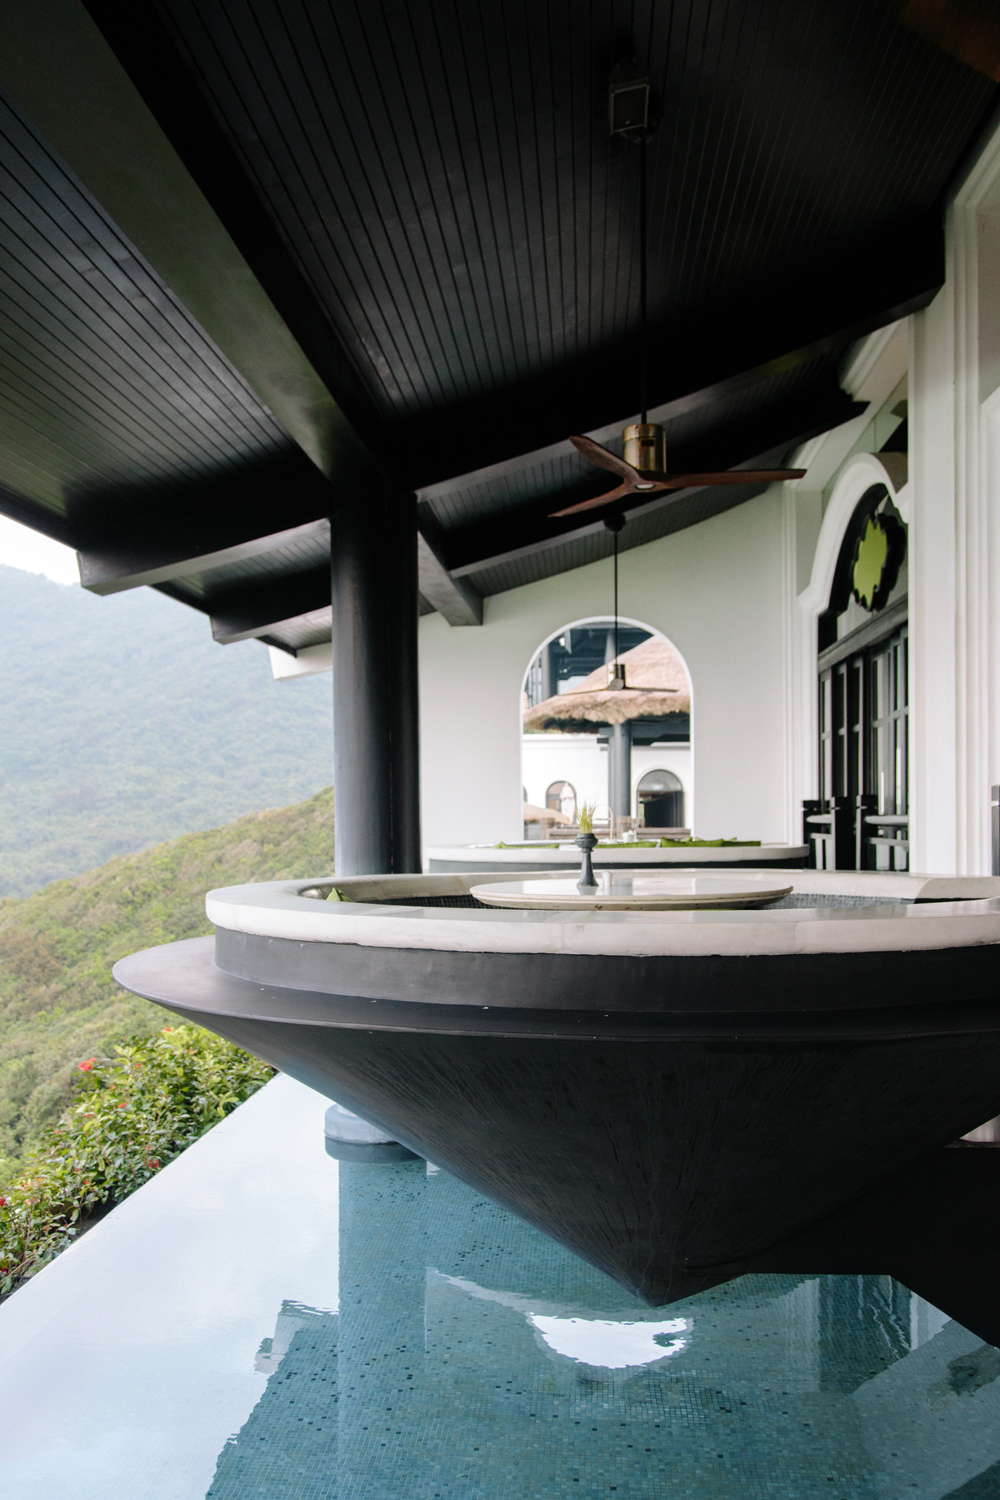 Bold design and architectural elements framethe natural views perfectly.